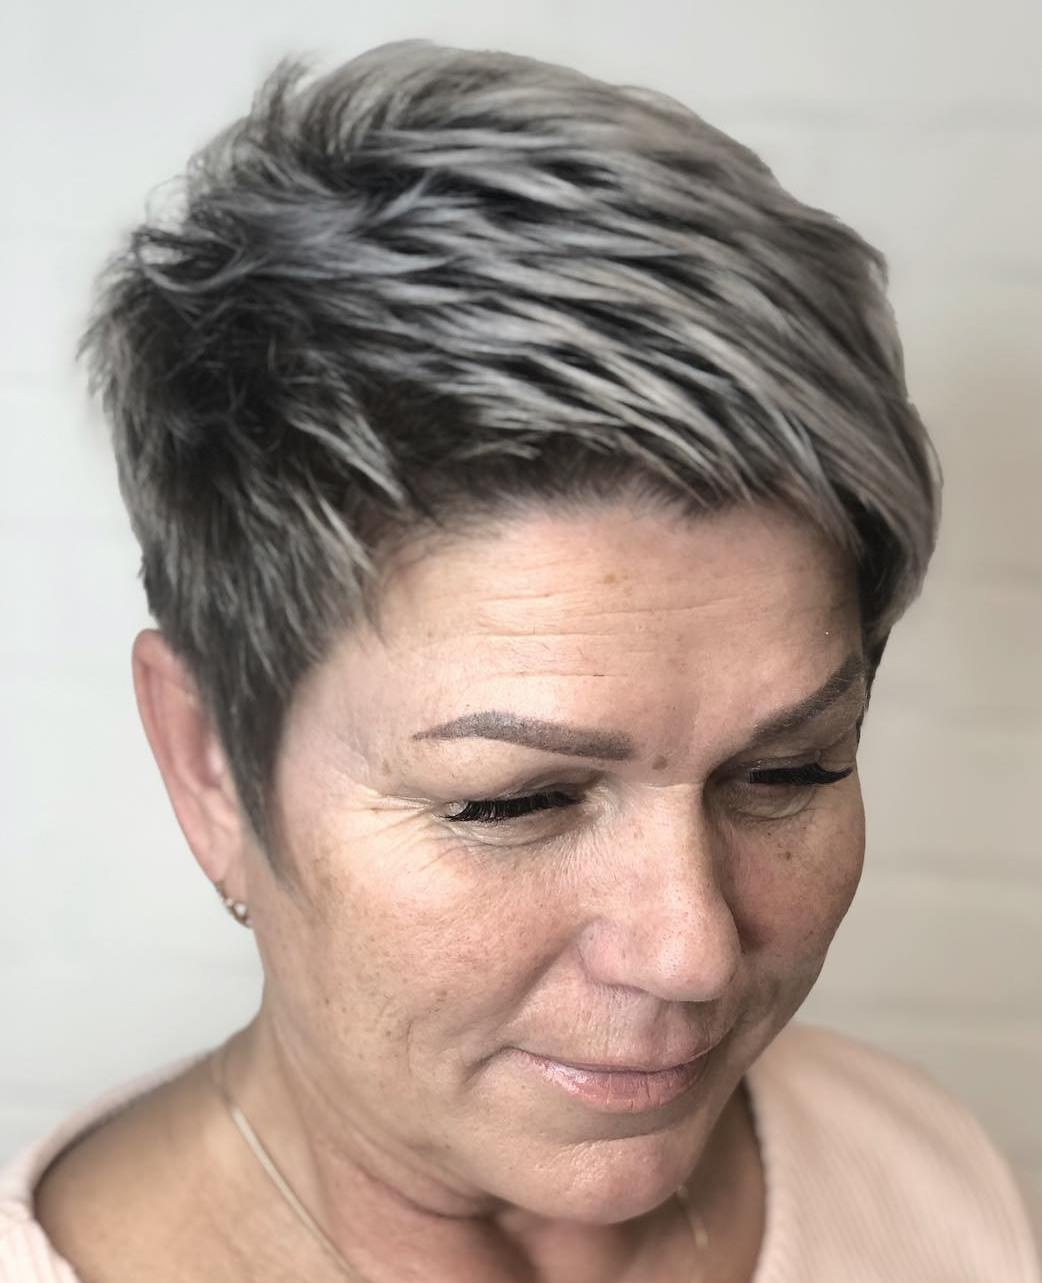 Women's Highlighted Haircut for Short Hair